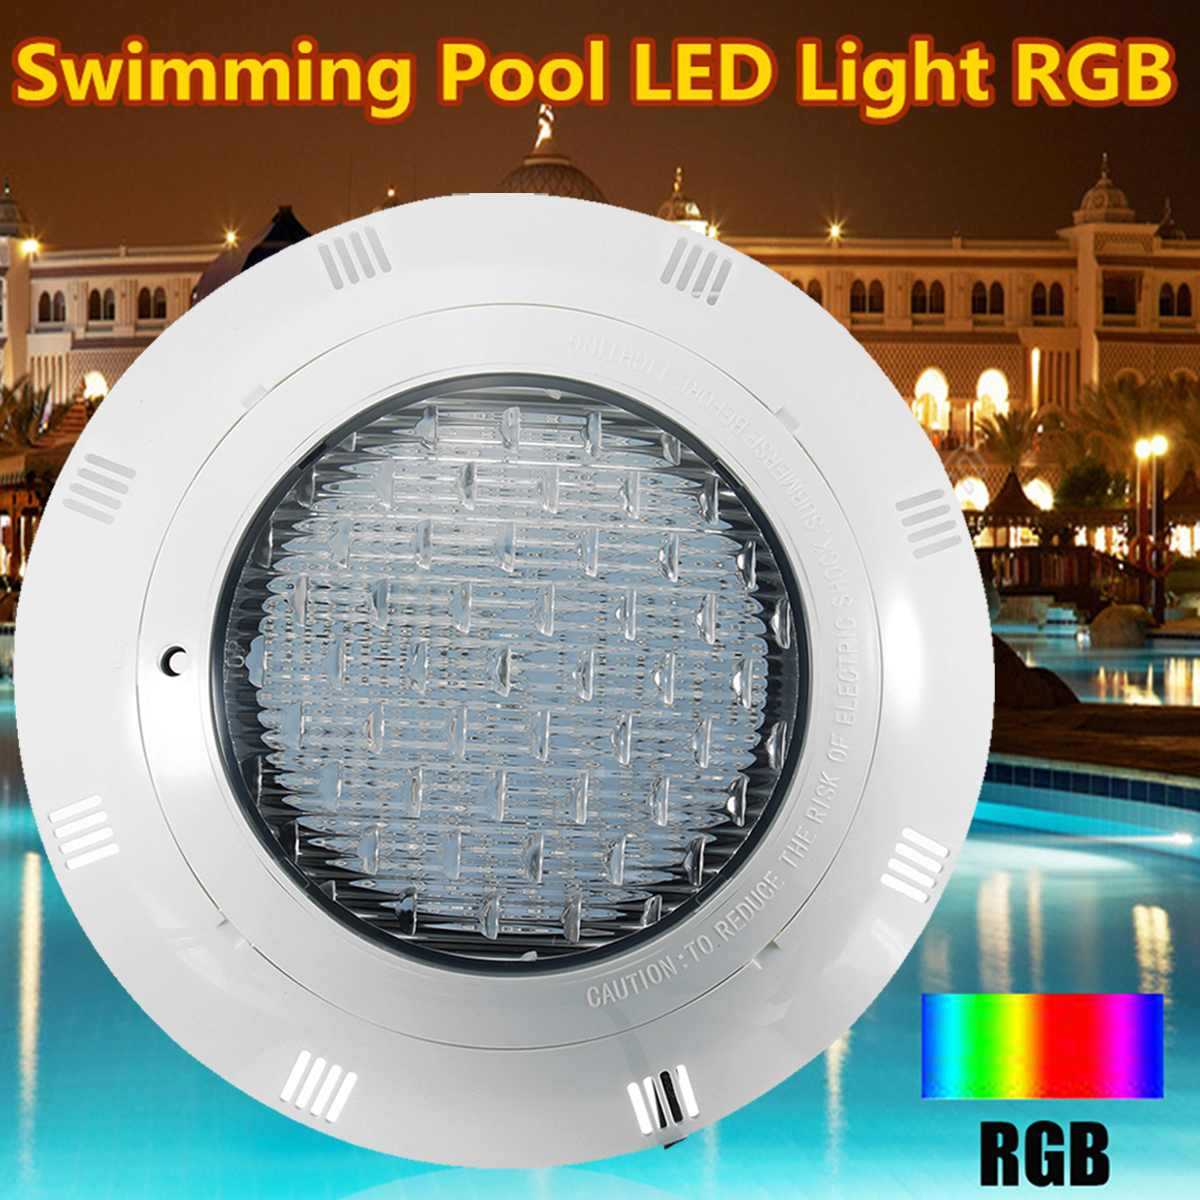 Led Lighting Remote Control Lights & Lighting Rgb Led Swimming Pool Underrwater Led Light 18/25/35/45/54/60/72w 7 Color Wall Mounted Pond Lighting